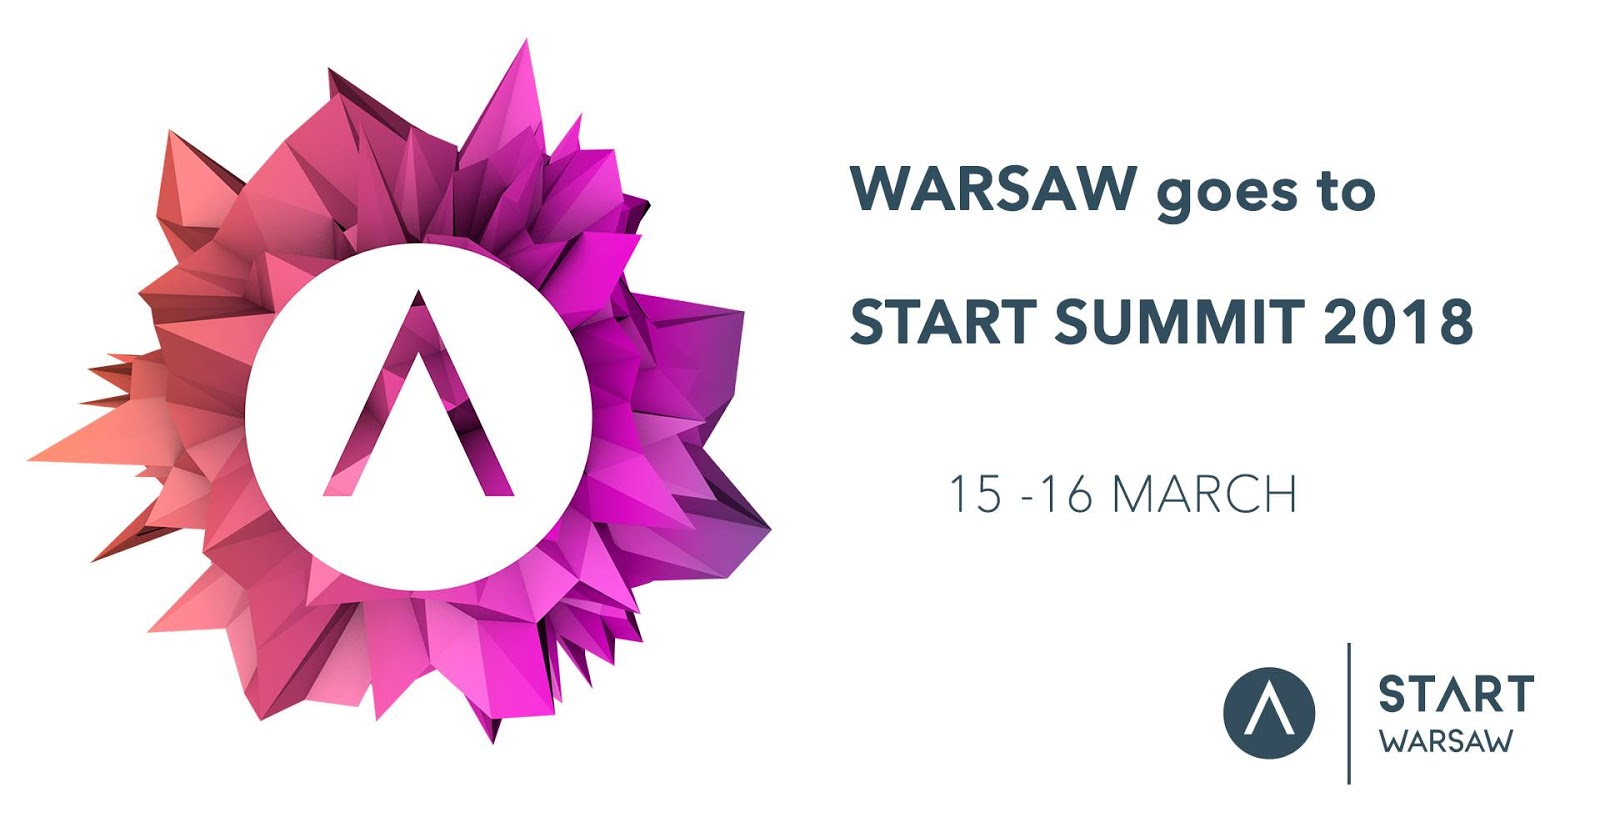 Start Warsaw team at Start Summit 2018